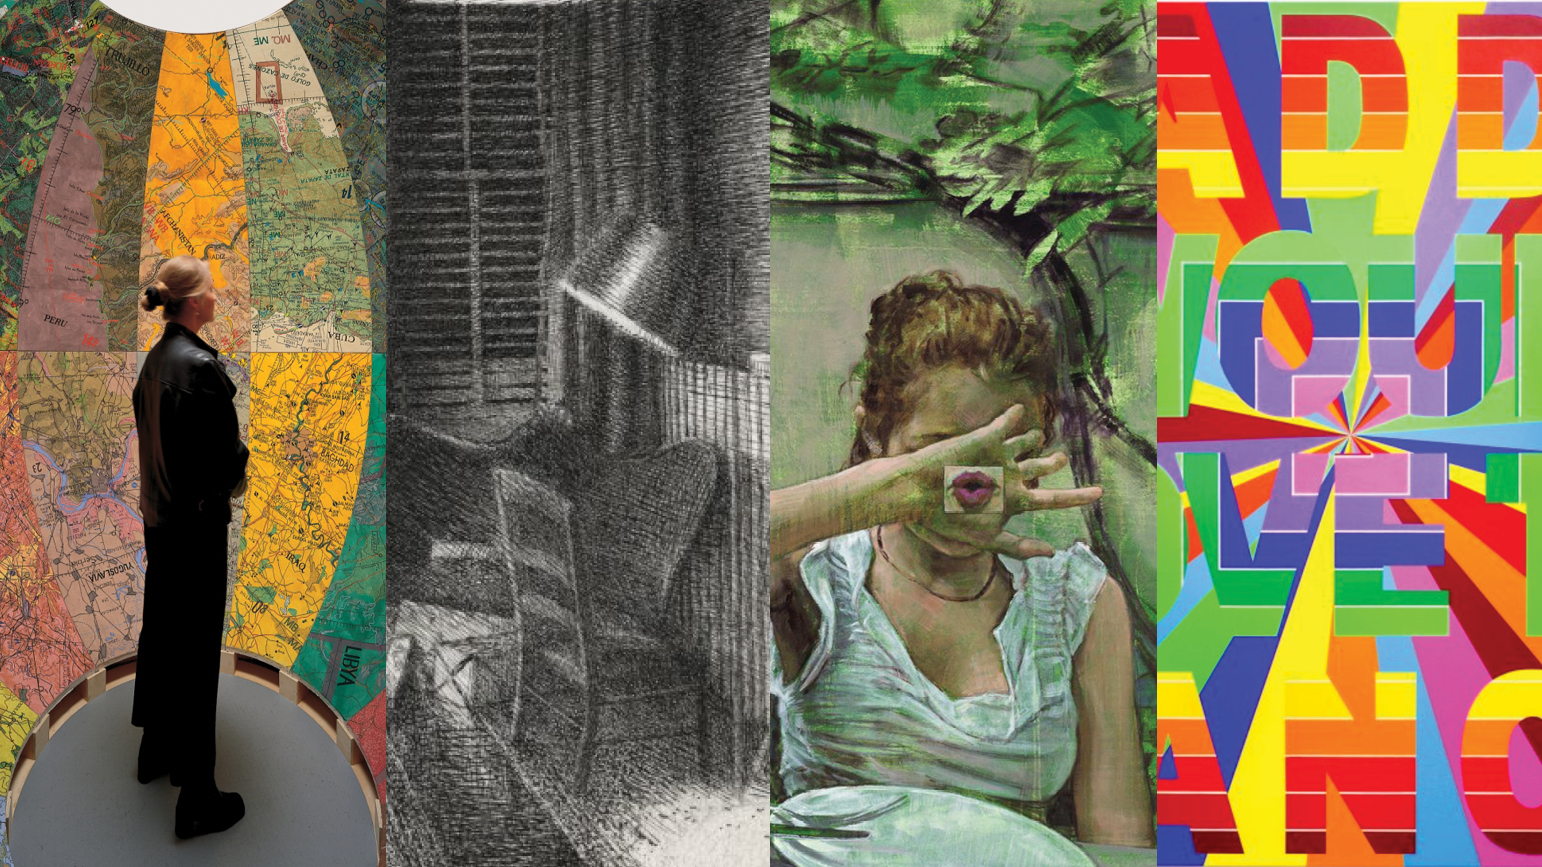 Four images: woman standing is a sphere surrounded by maps; pencil drawing of a living room; painting of a woman with her hand in front of her face; hard-edged geometric painting